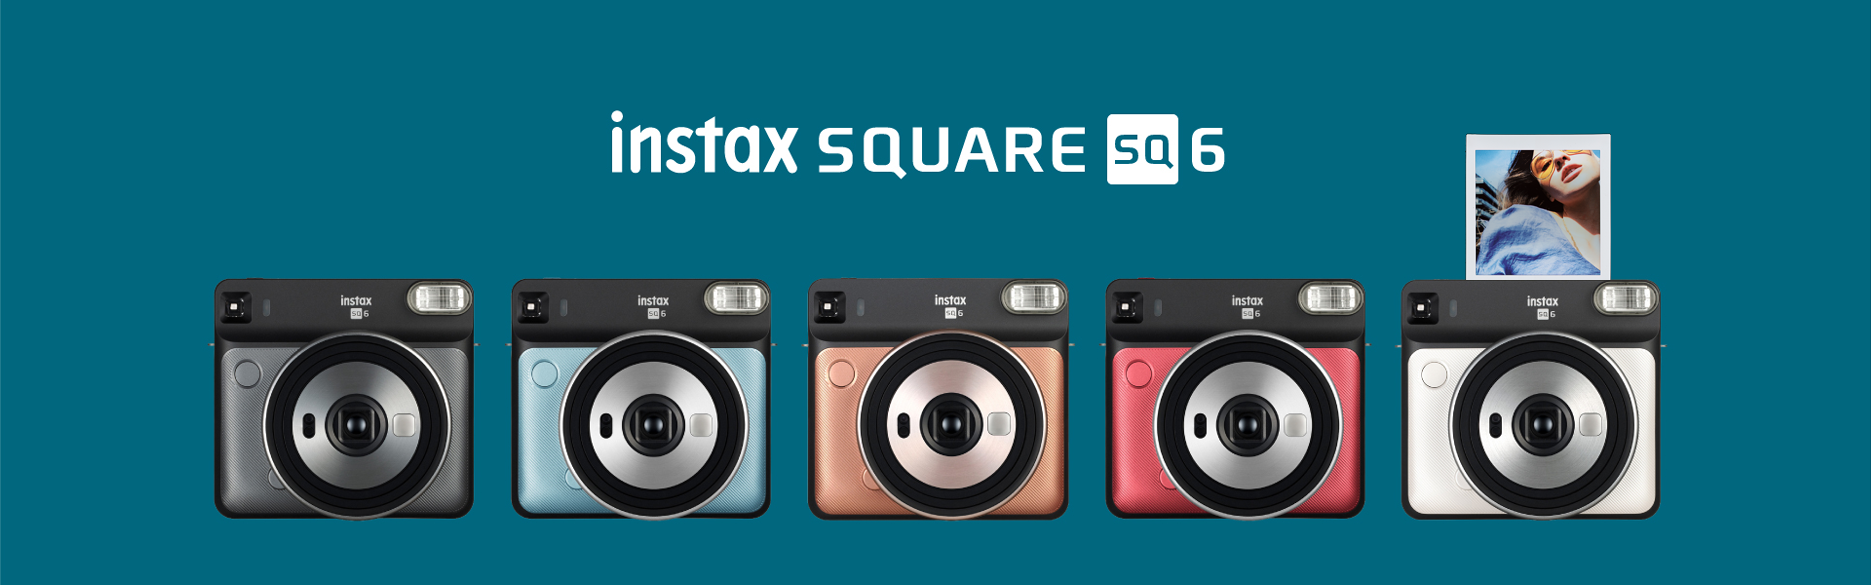 [photo] Instax SQUARE SQ6 in Graphite Black, Aqua Blue, Blush Gold, Ruby Red and Pearl White with a title on a green background